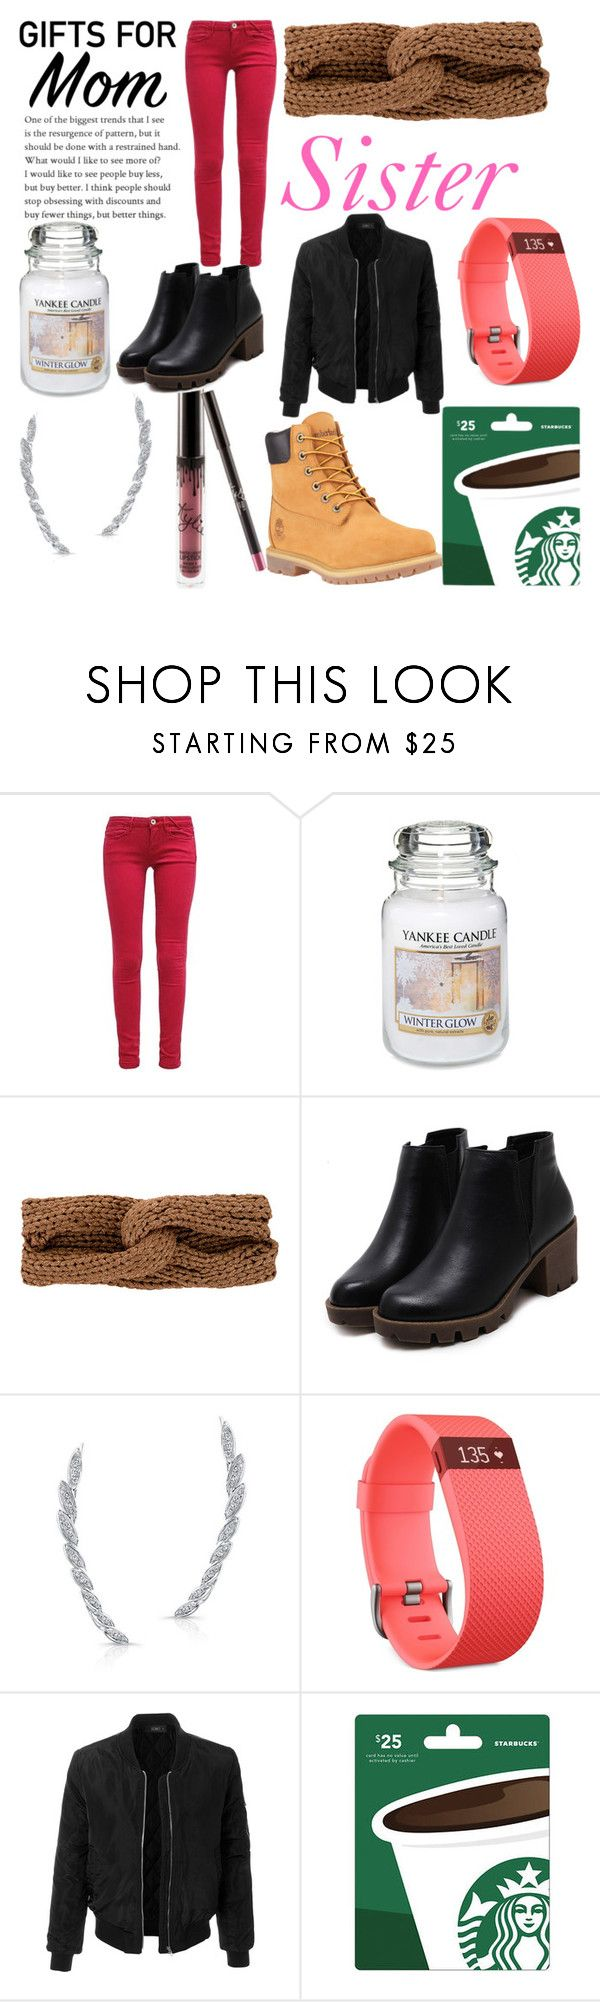 """""""Christmas Gift Ideas Contest"""" by erica-slay ❤ liked on Polyvore featuring Yankee Candle, rag & bone, Fitbit, LE3NO and Timberland"""